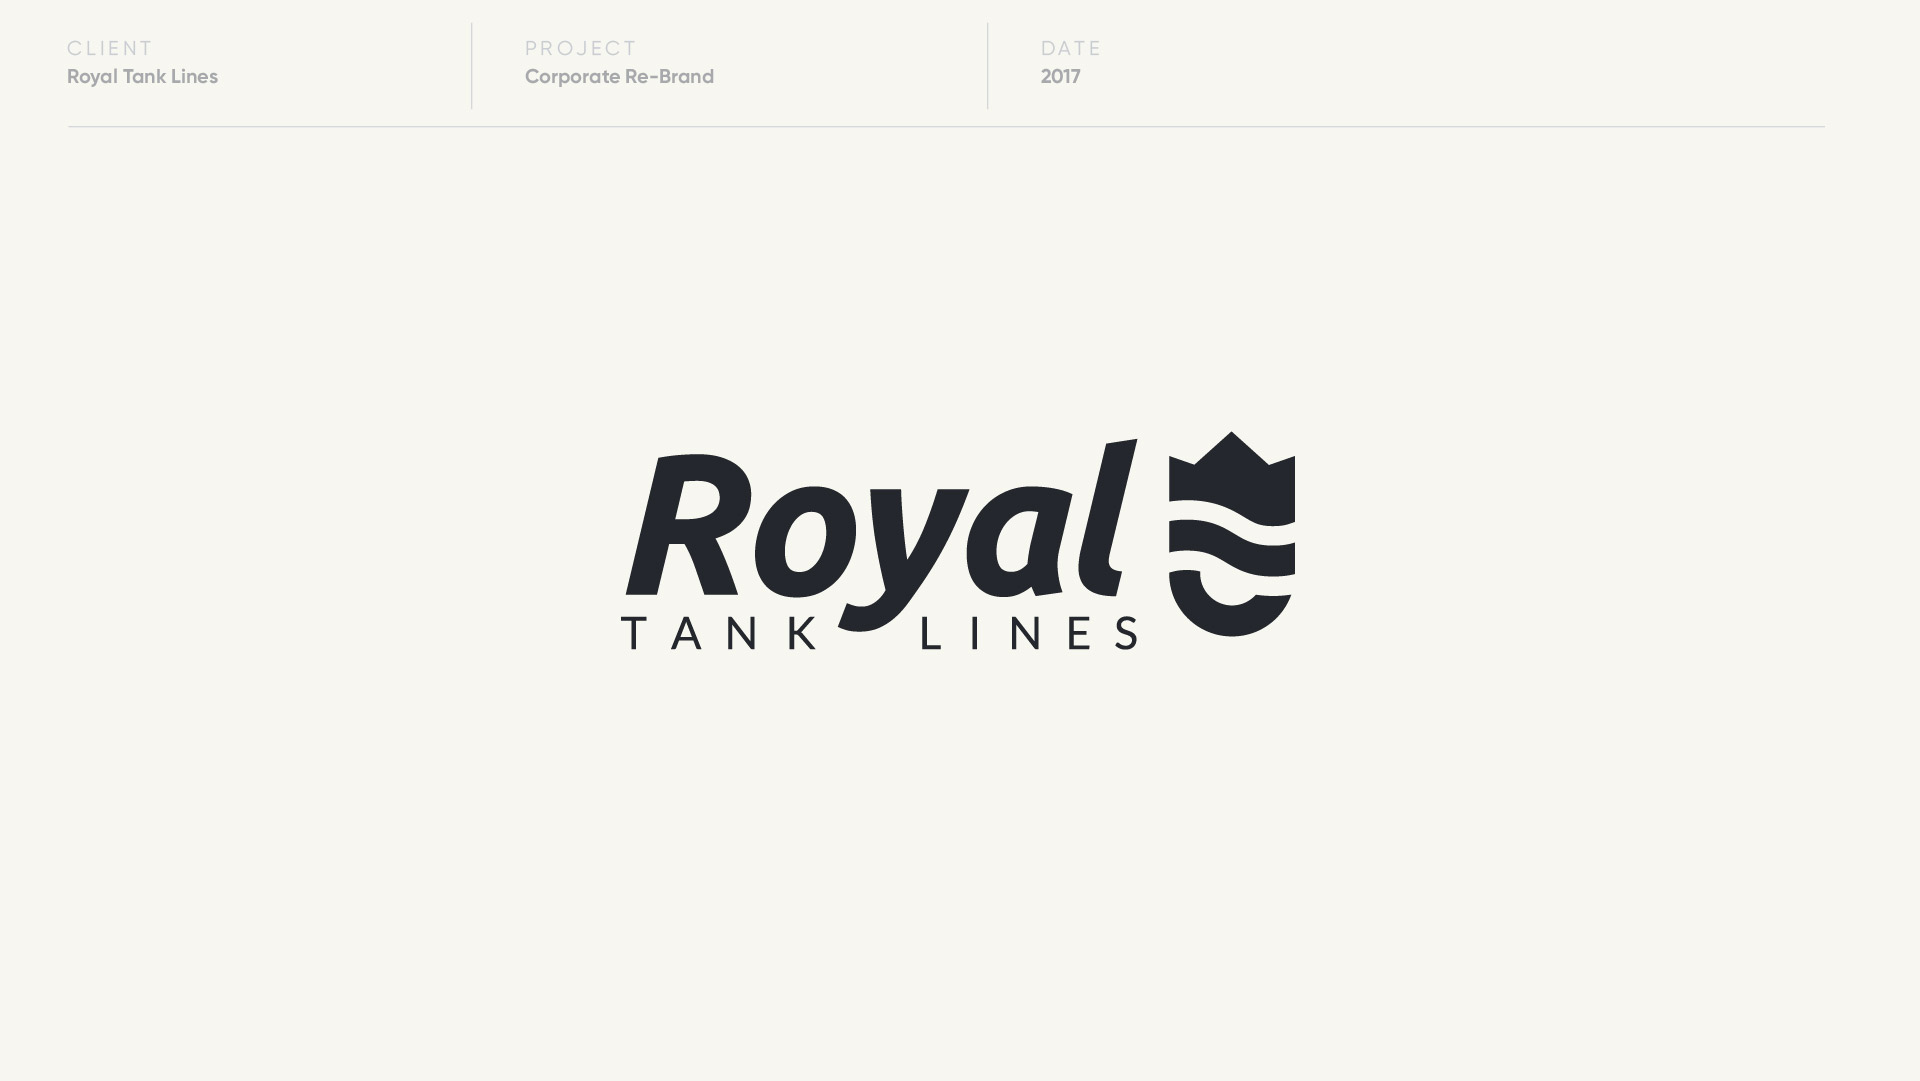 royal tank lines logo design by anthony mika